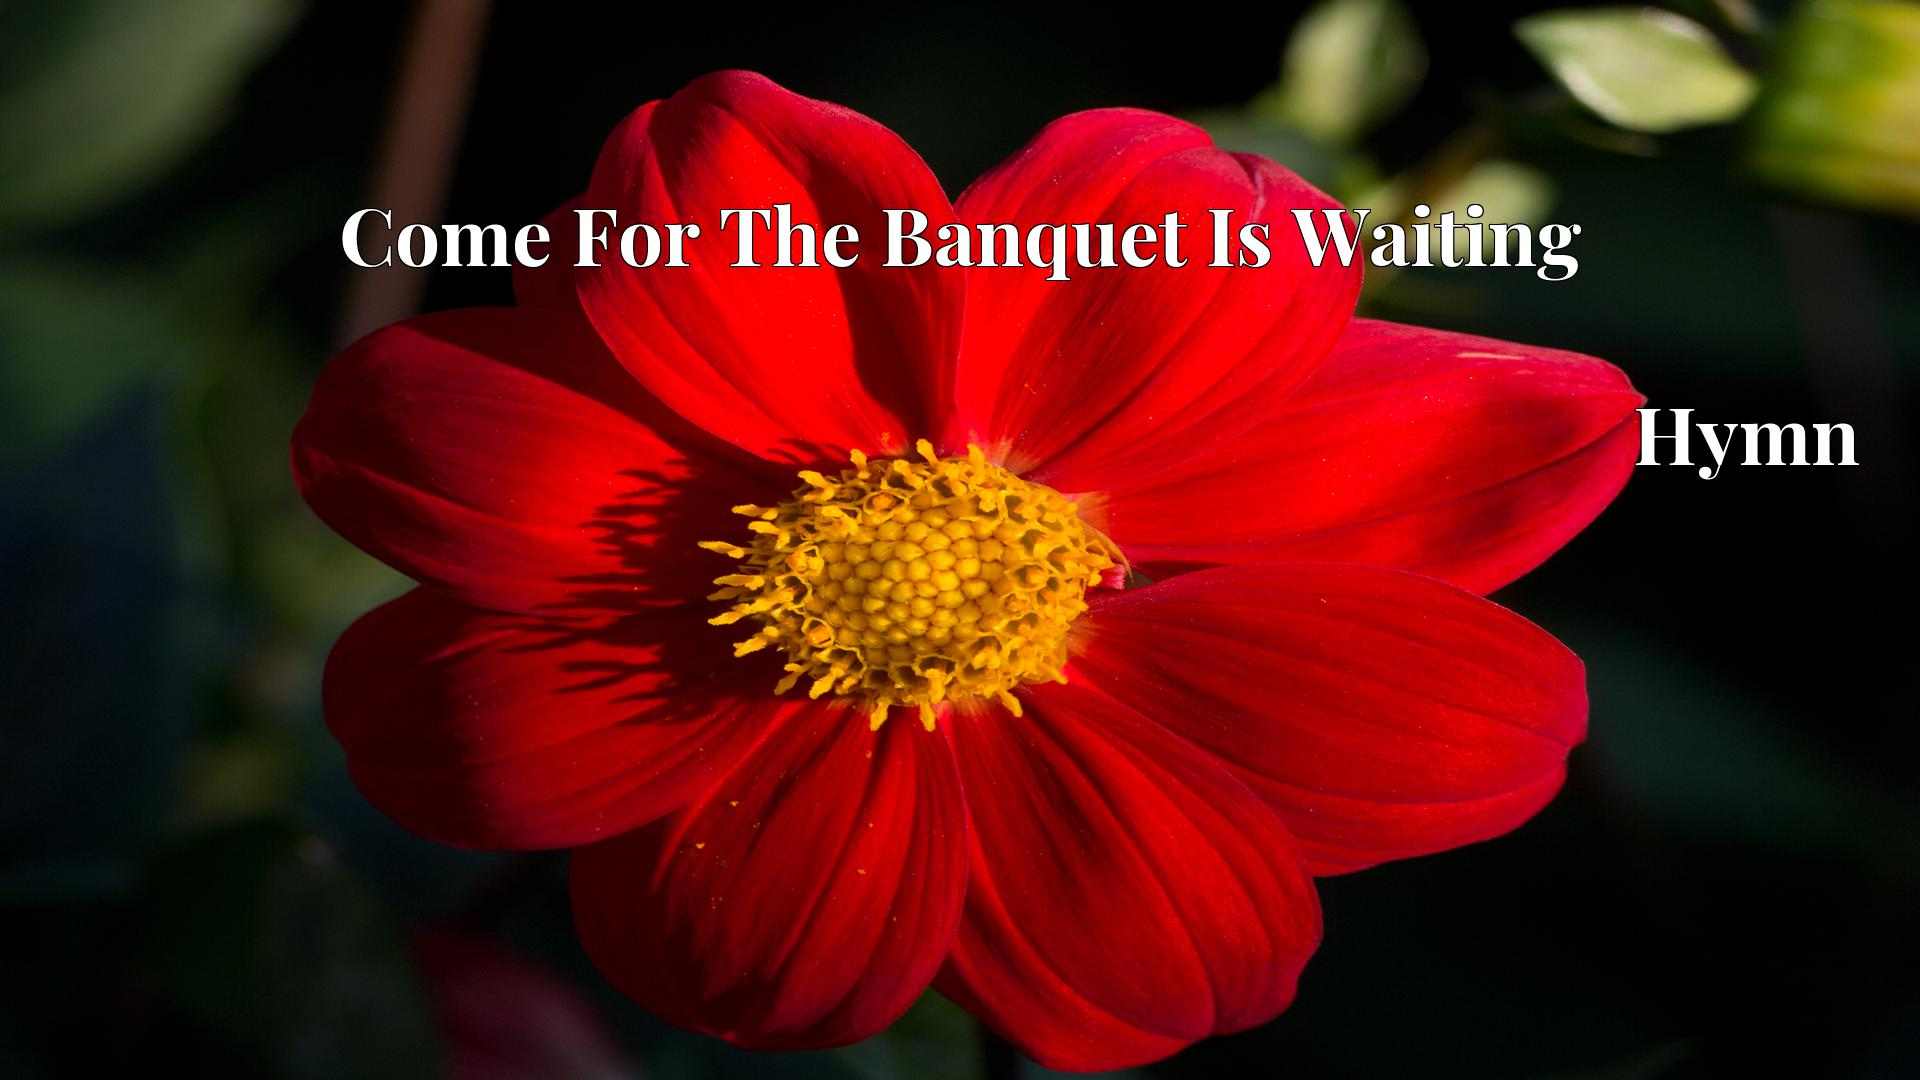 Come For The Banquet Is Waiting Hymn Lyric